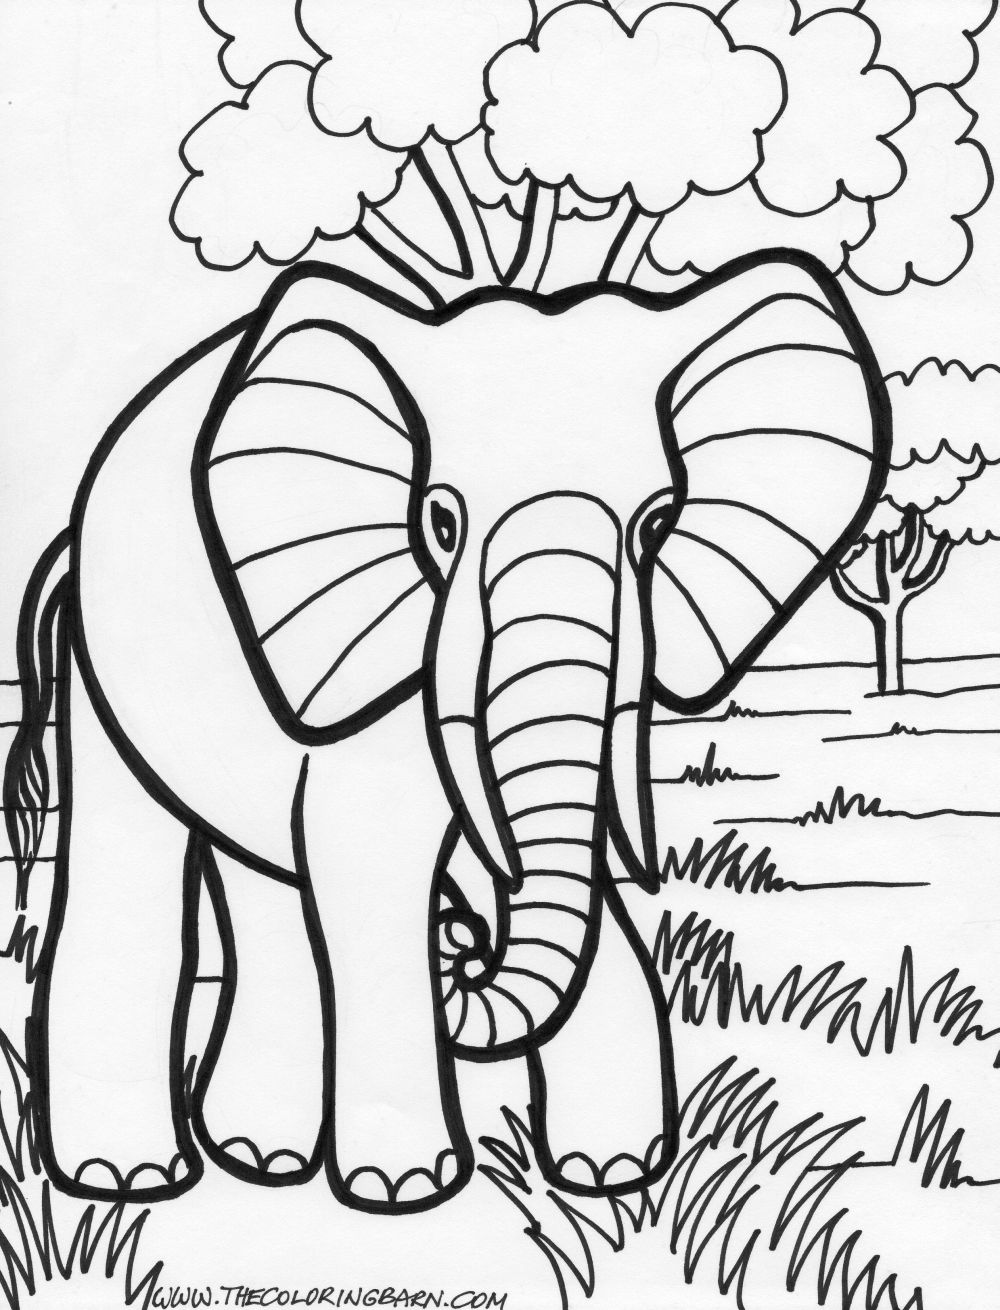 coloring book elephant images print download teaching kids through elephant coloring book elephant images coloring